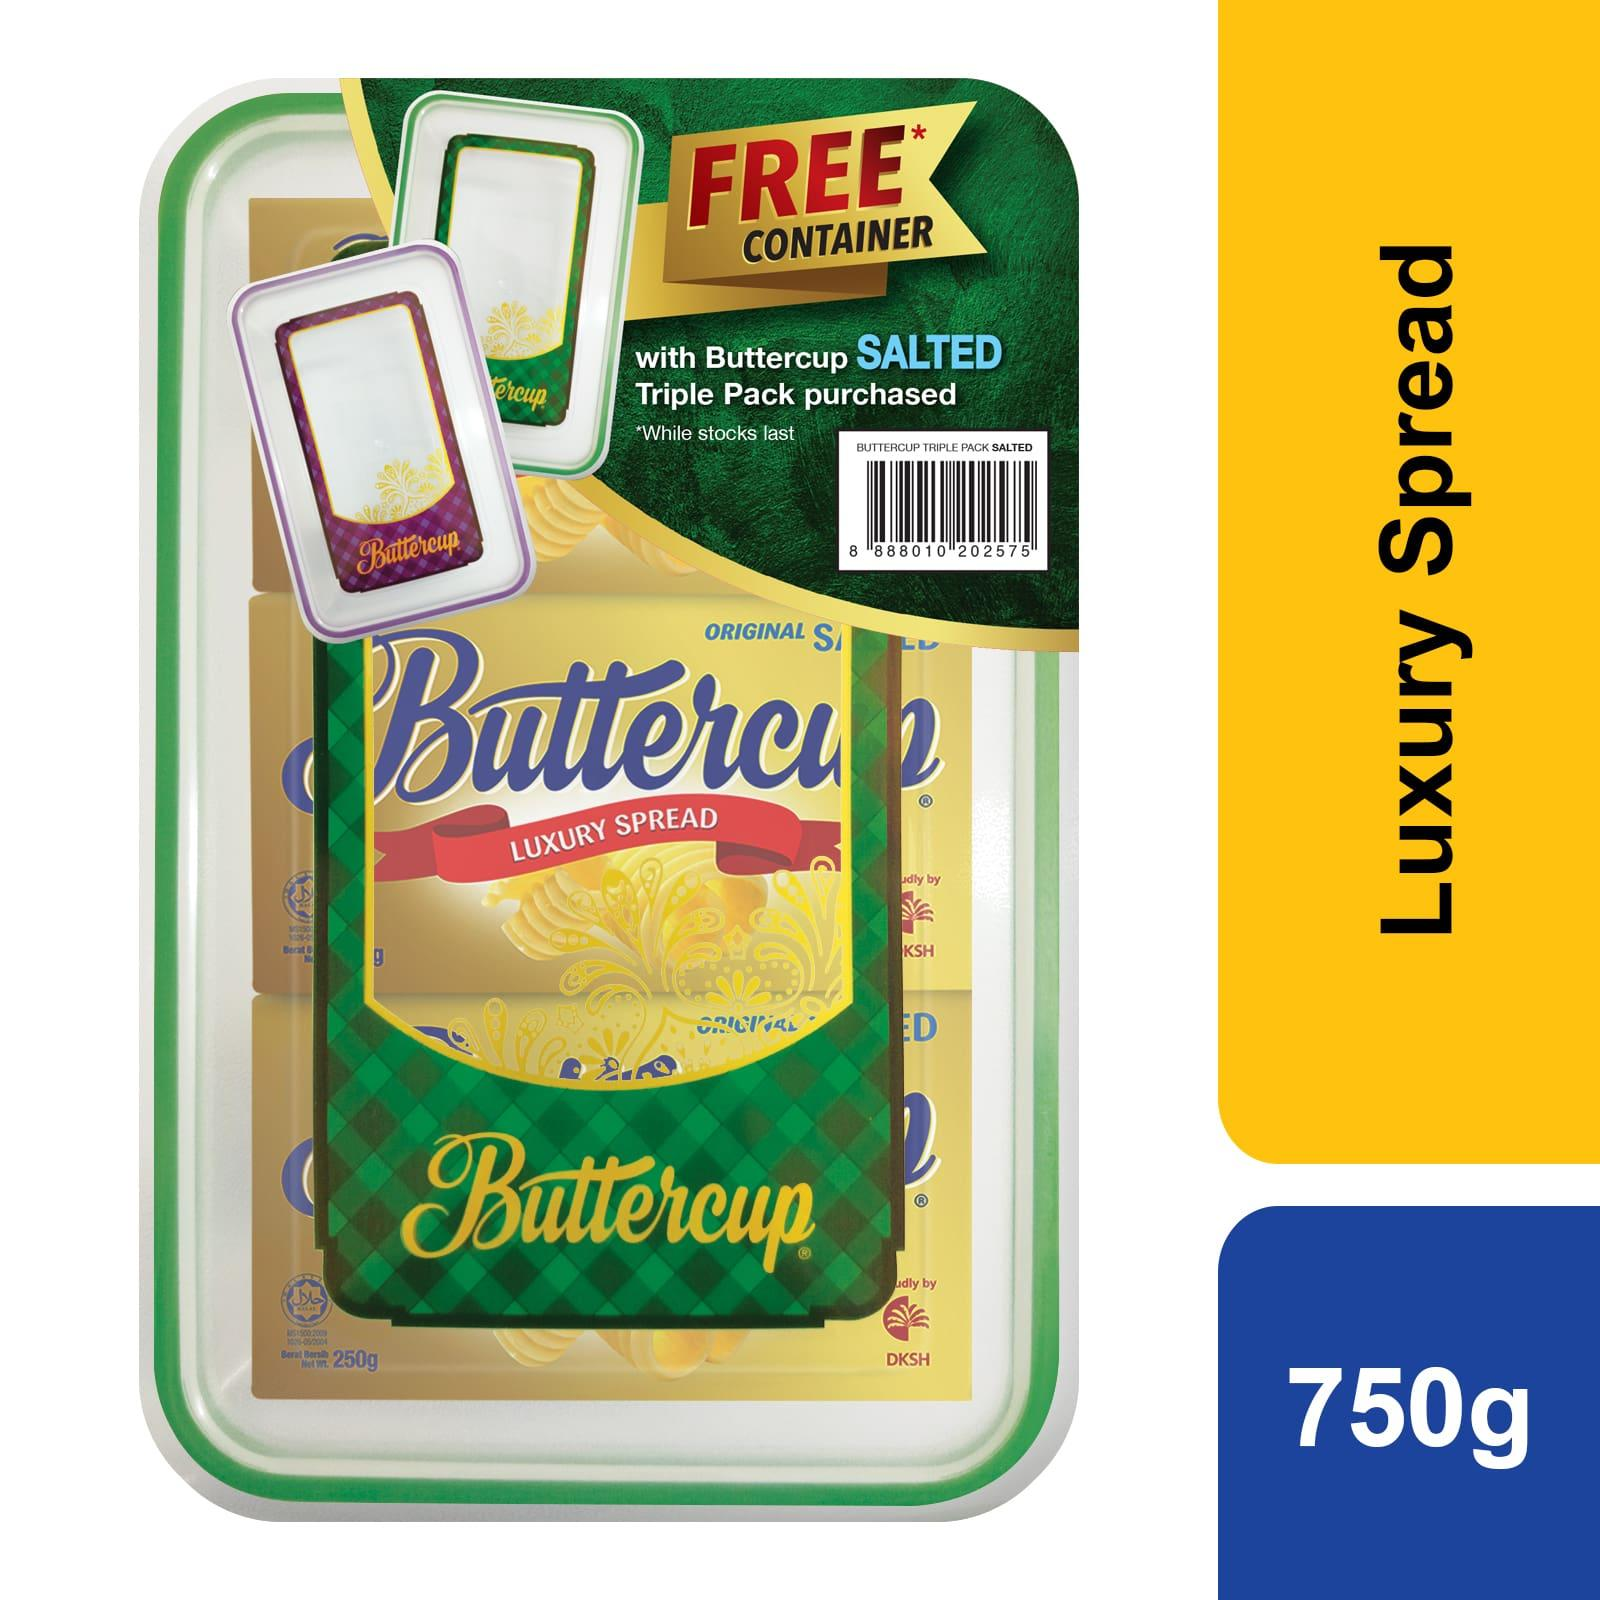 Buttercup Salted Luxury Spread Triple Pack